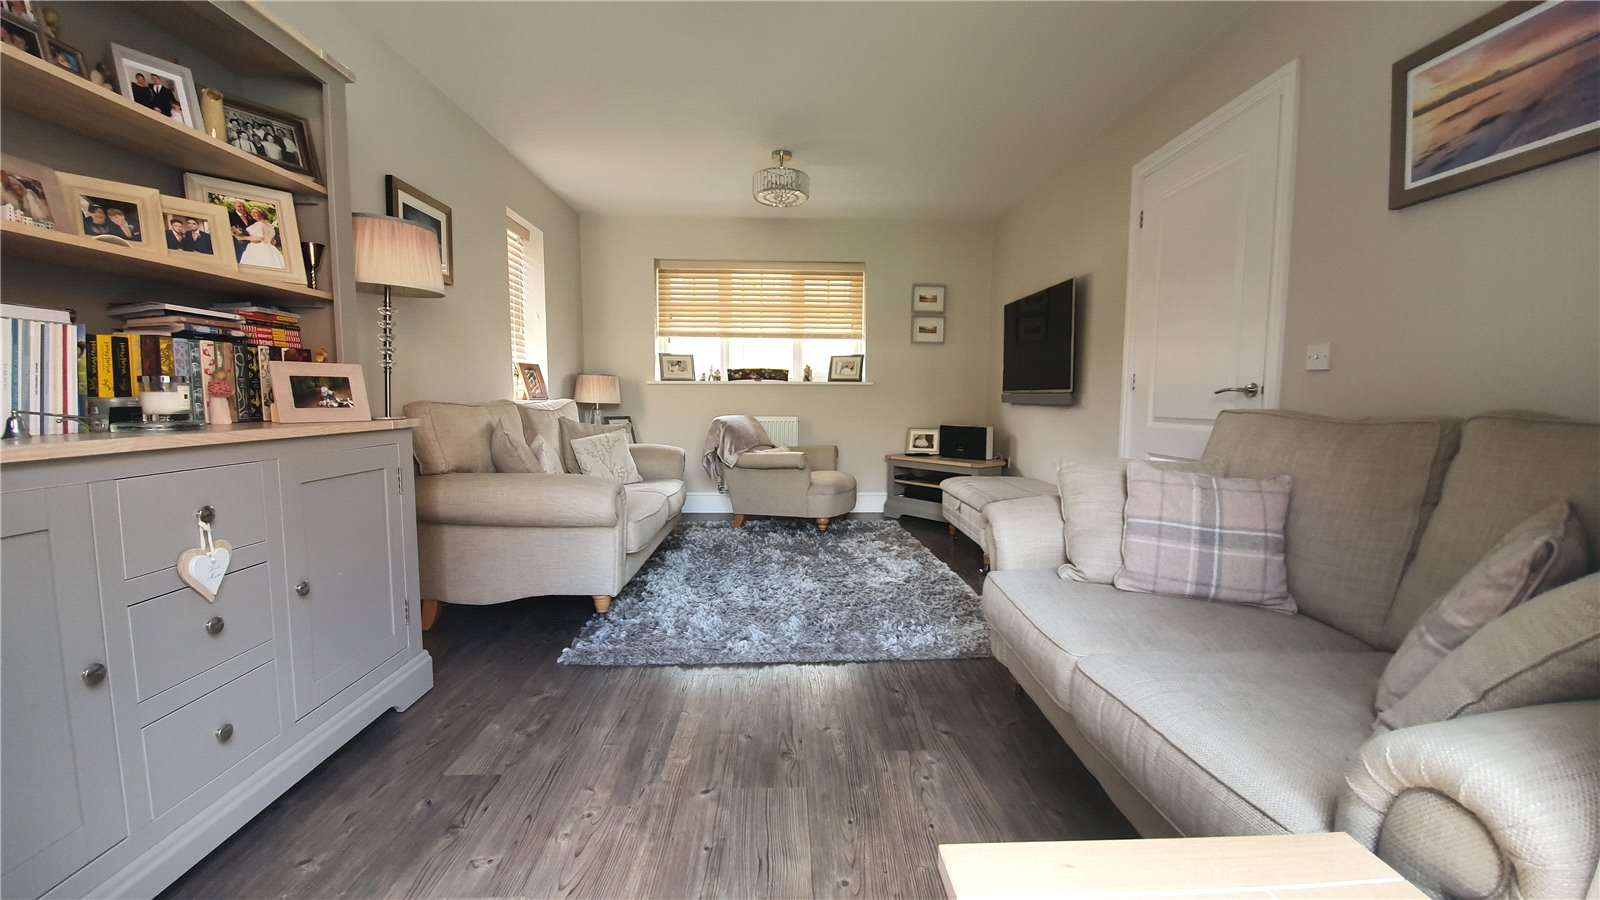 3 bed house for sale in Harvest Drive, St Neots  - Property Image 2